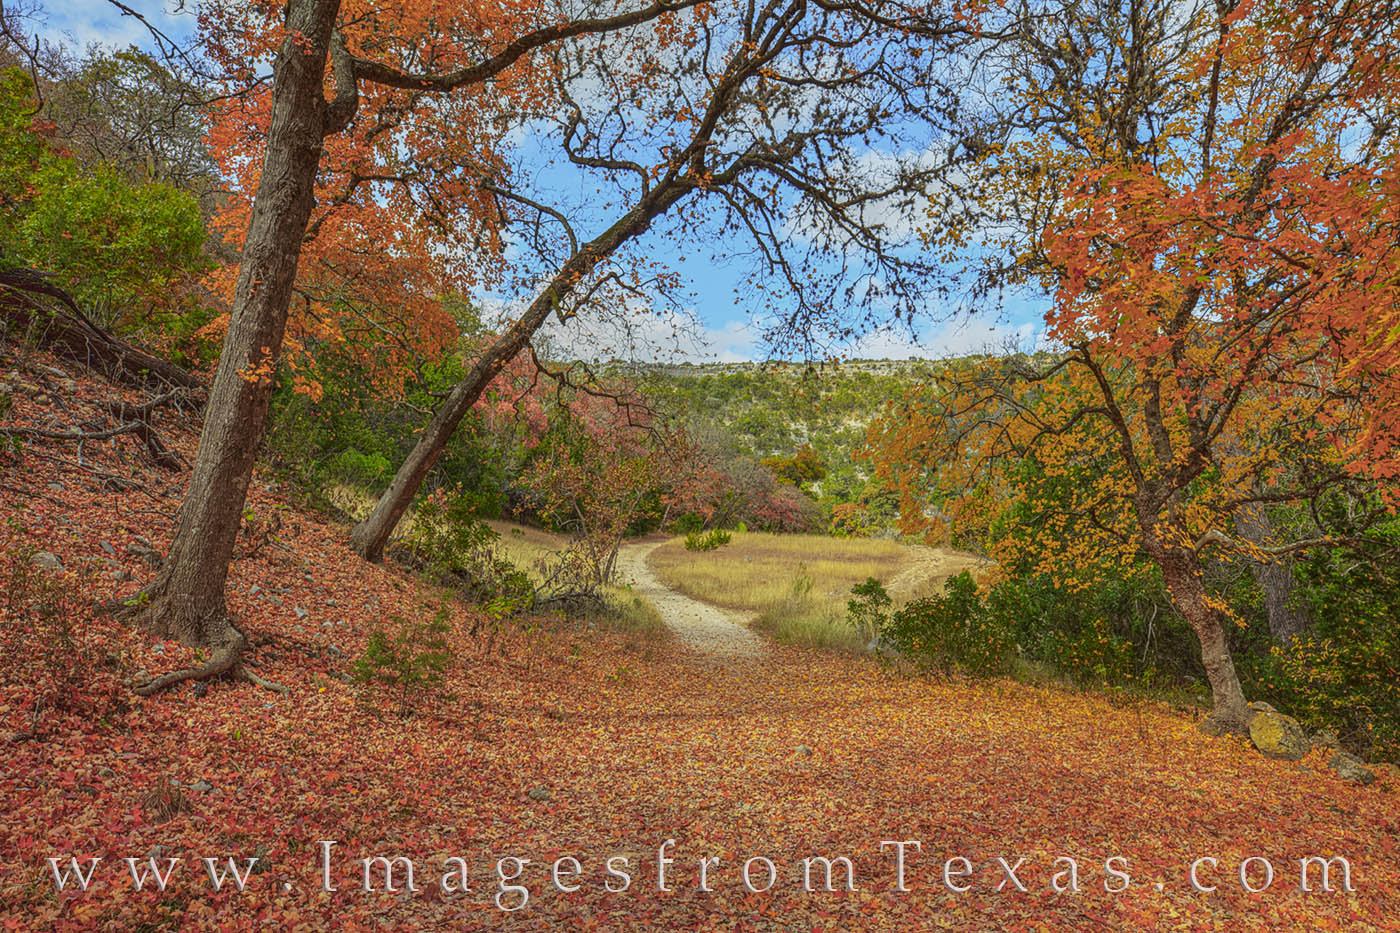 lost maples state park, red maples, texas state parks, hill country, fall, autumn, november, prints, photo